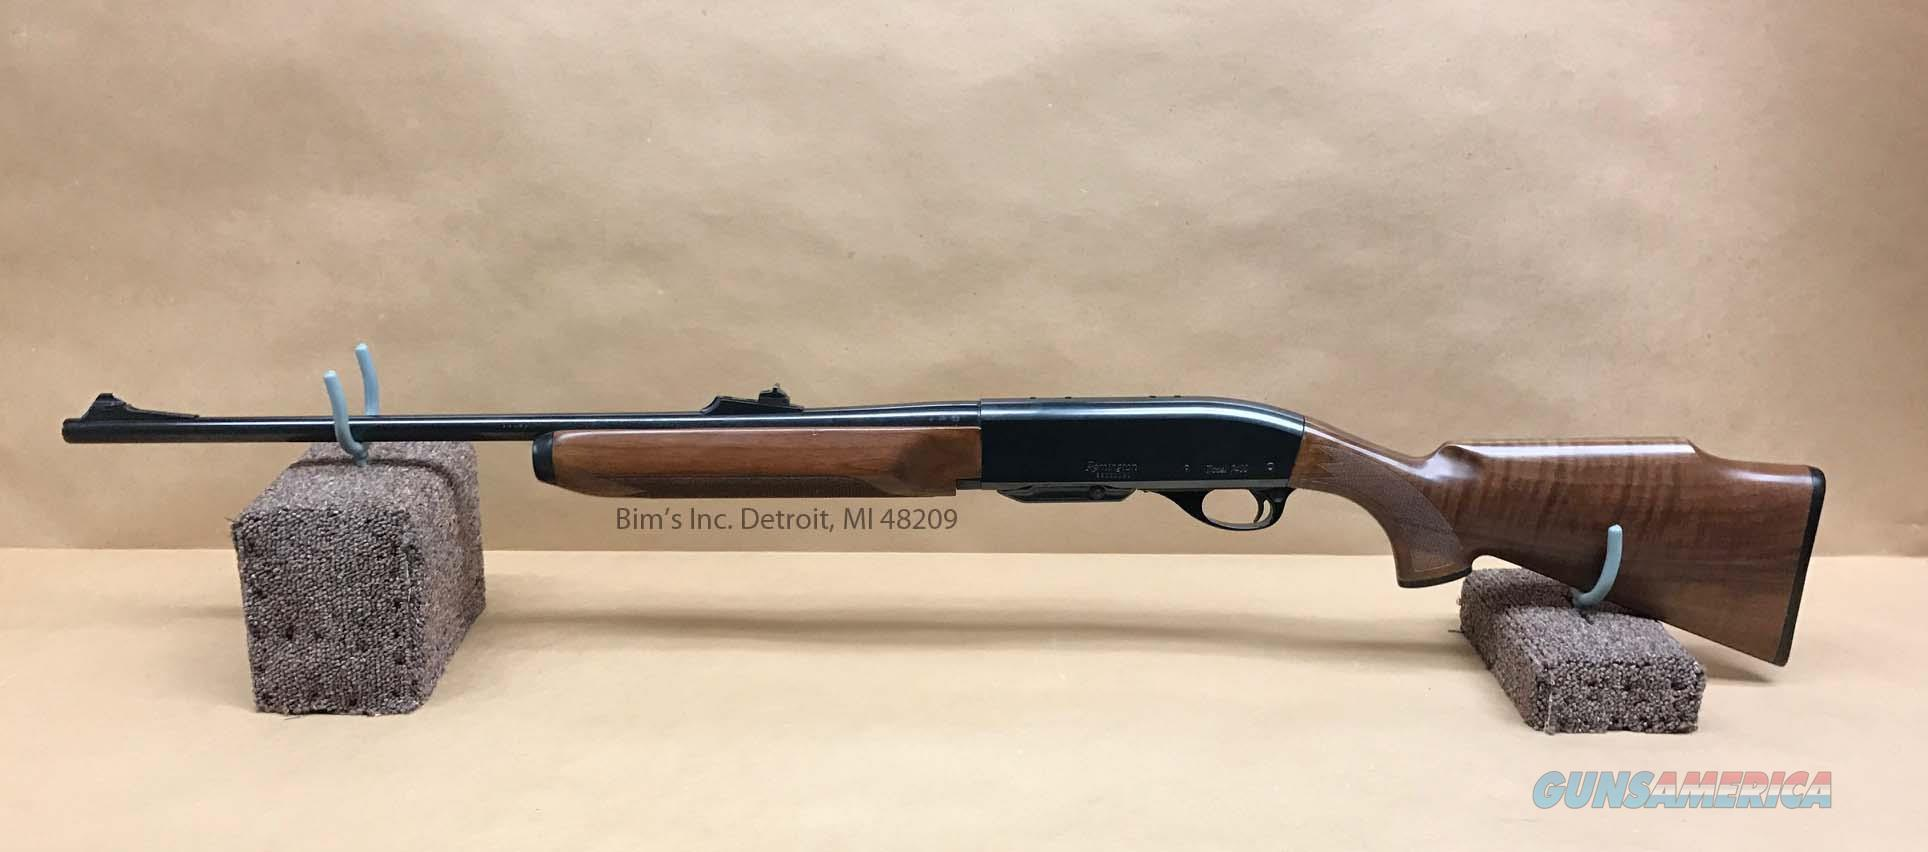 Remington 7400 30.06 Very Good condition  Guns > Rifles > Remington Rifles - Modern > Other